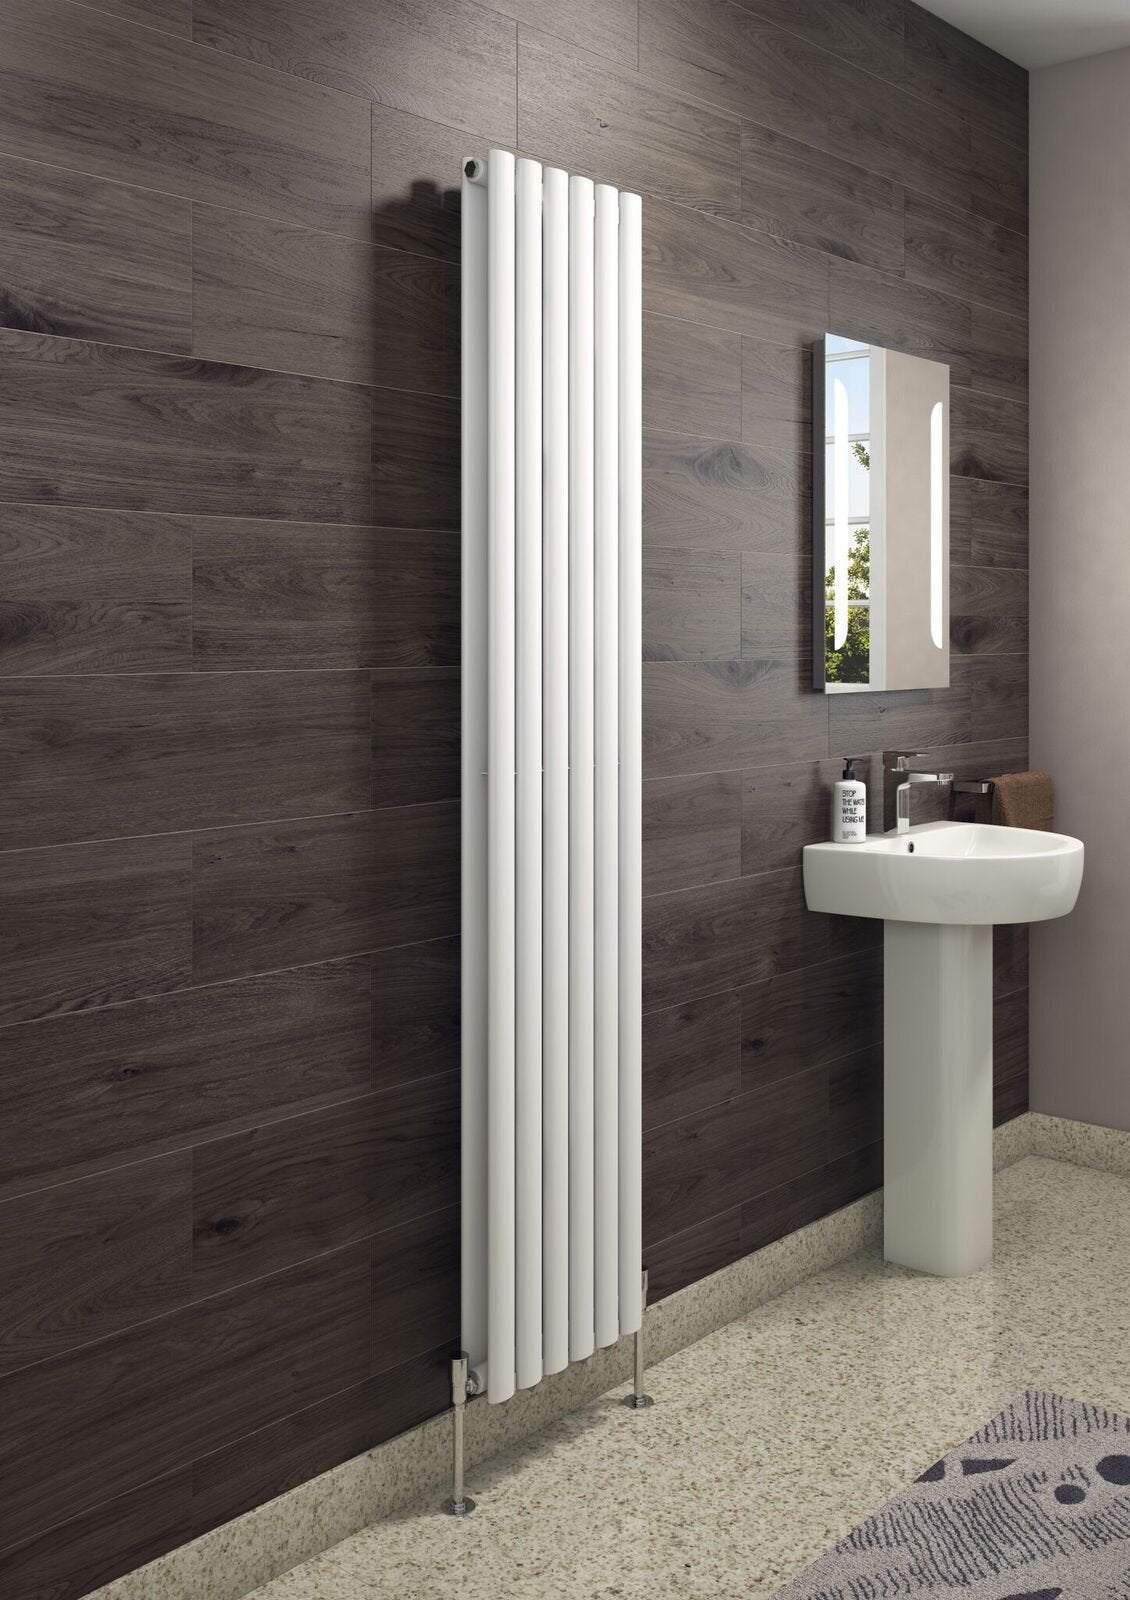 Cassellie Celsius Double Panel Designer Vertical Radiator - 1800mm High x 354mm Wide - White